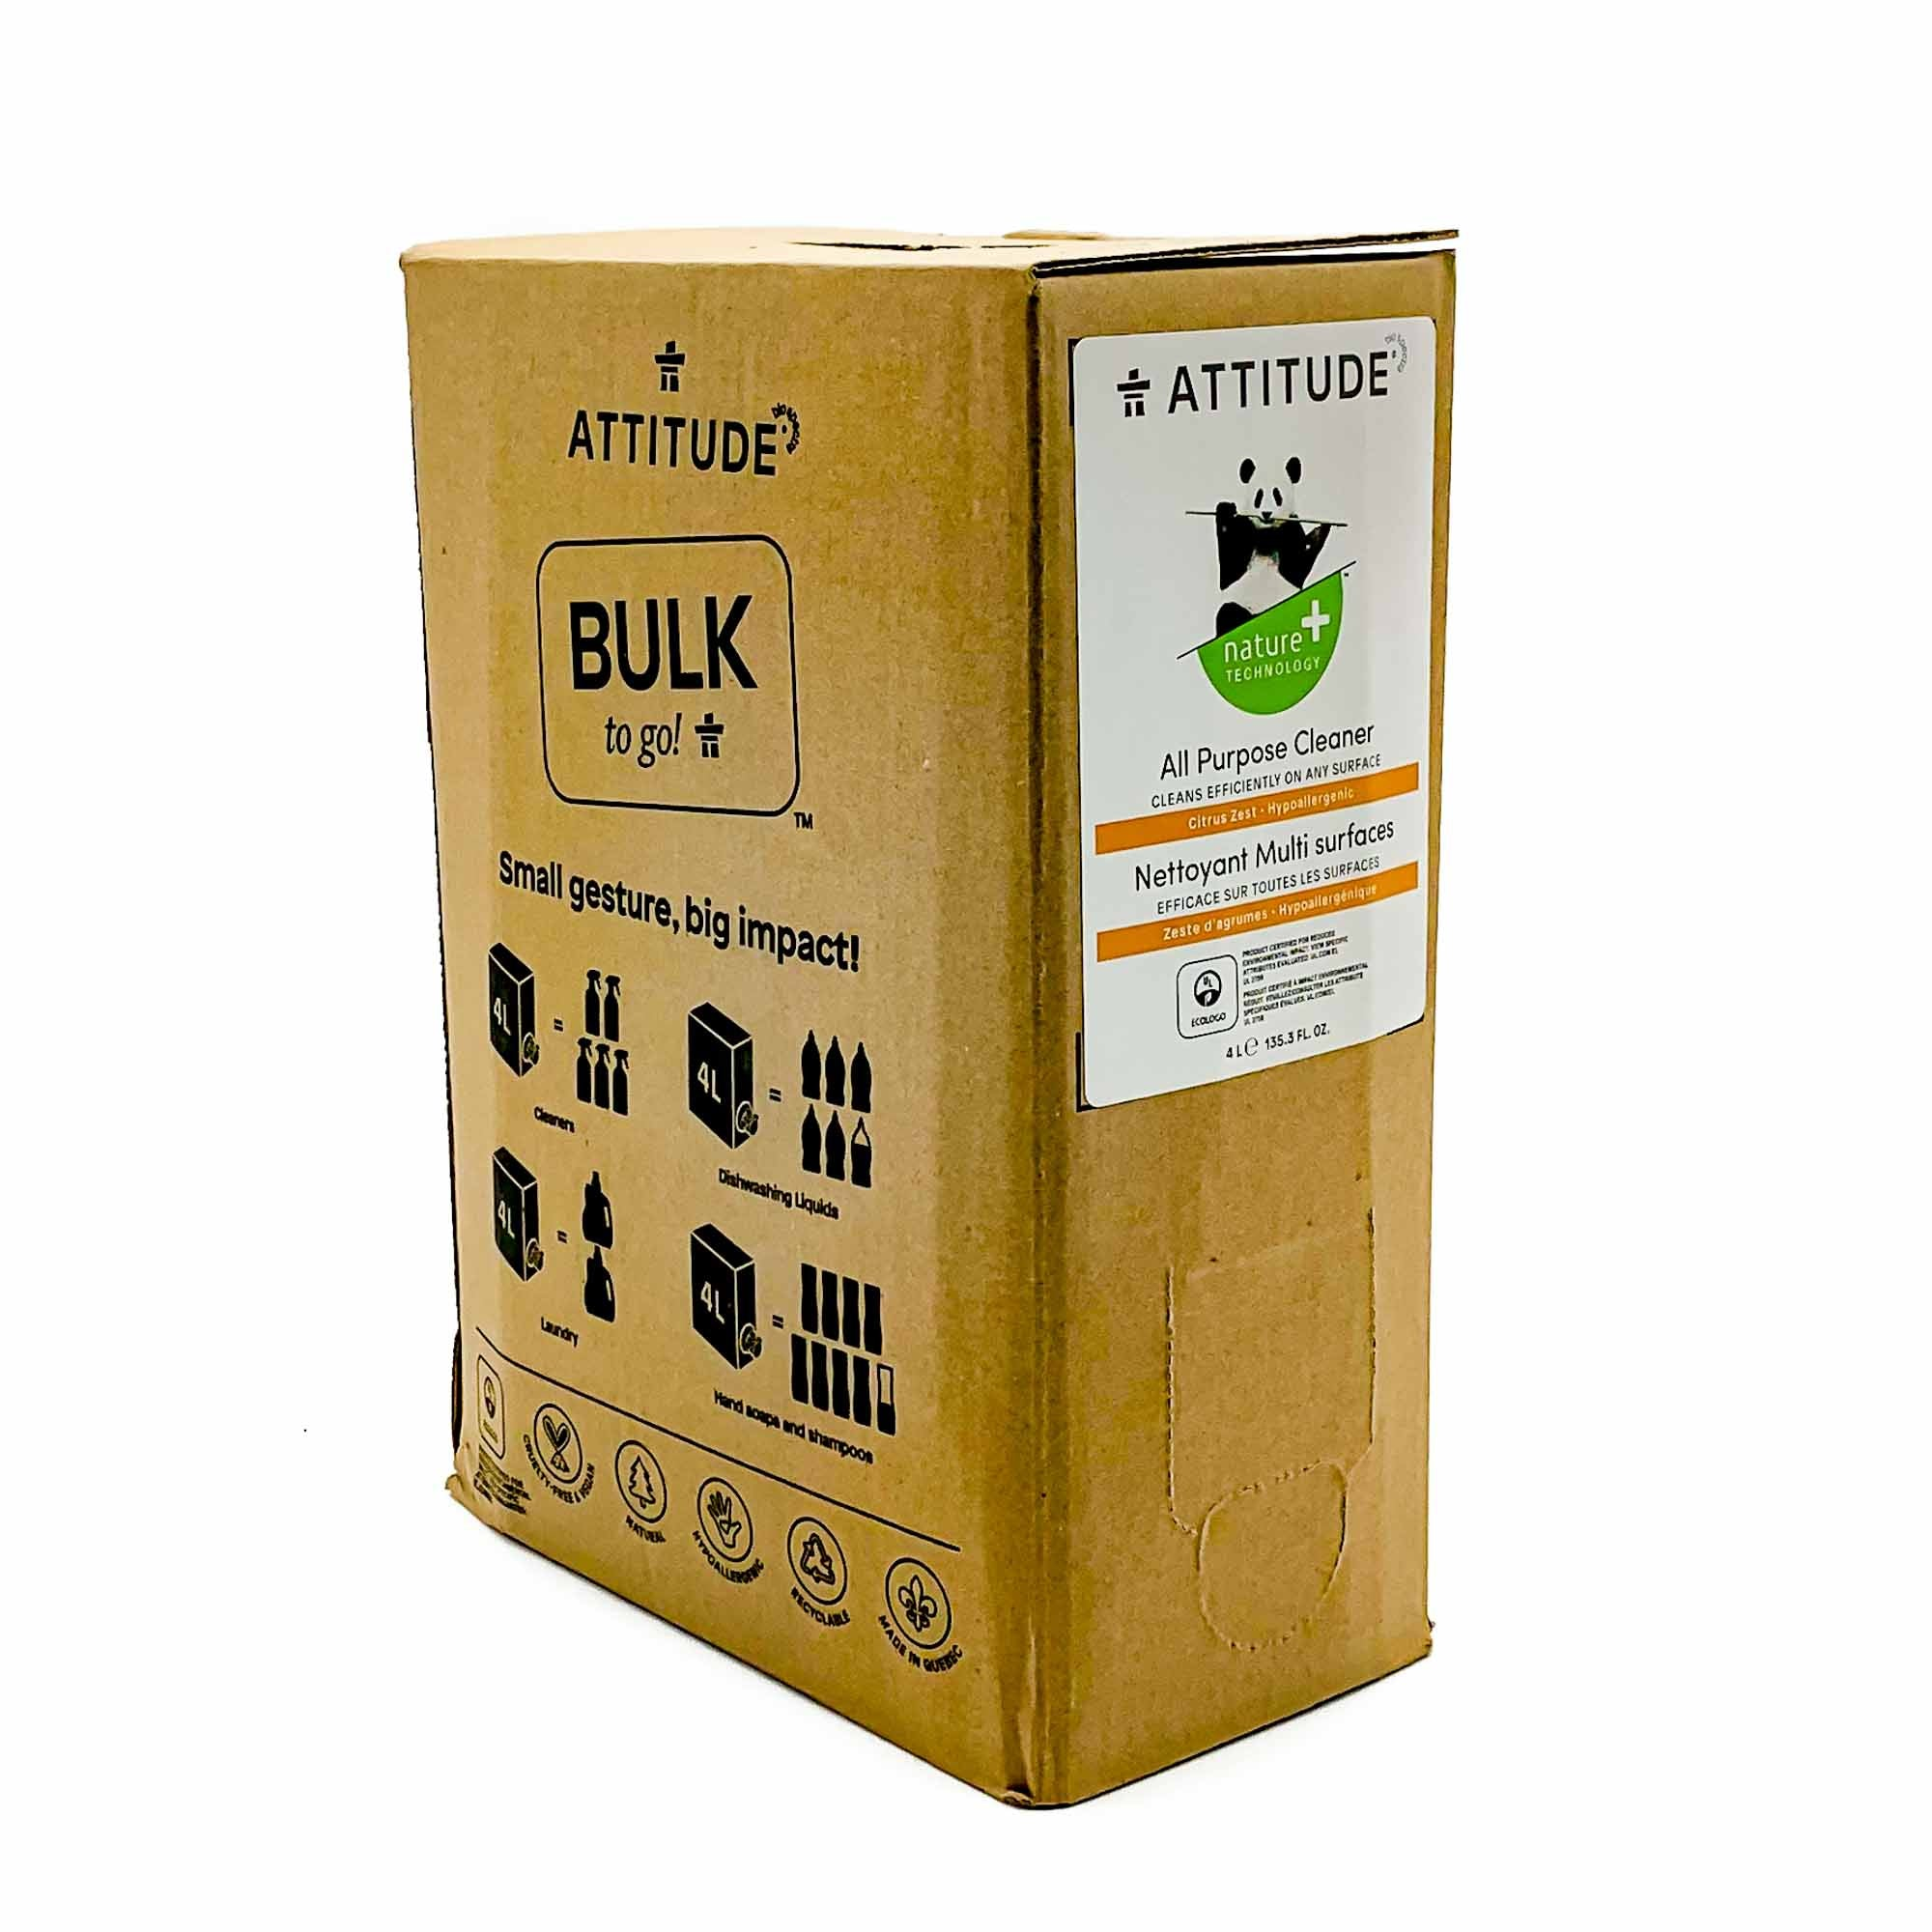 ATTITUDE Bulk To Go All Purpose Cleaner Citrus Zest - Mortise And Tenon